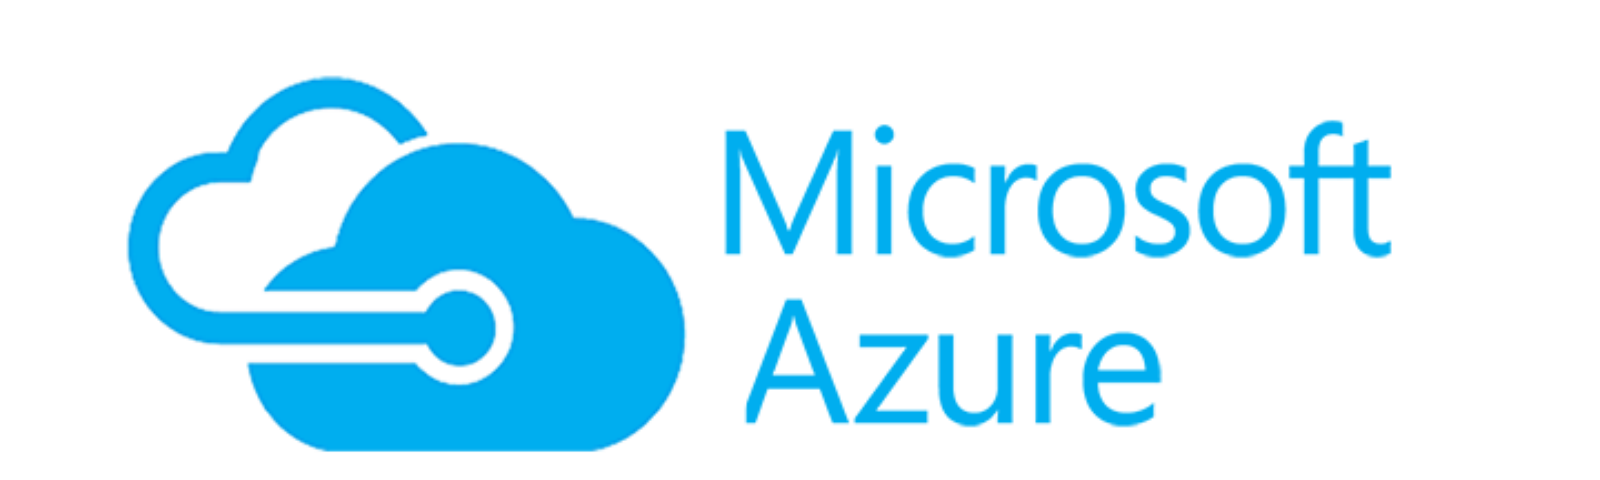 Top Tutorials To Learn Microsoft Azure For Cloud Computing